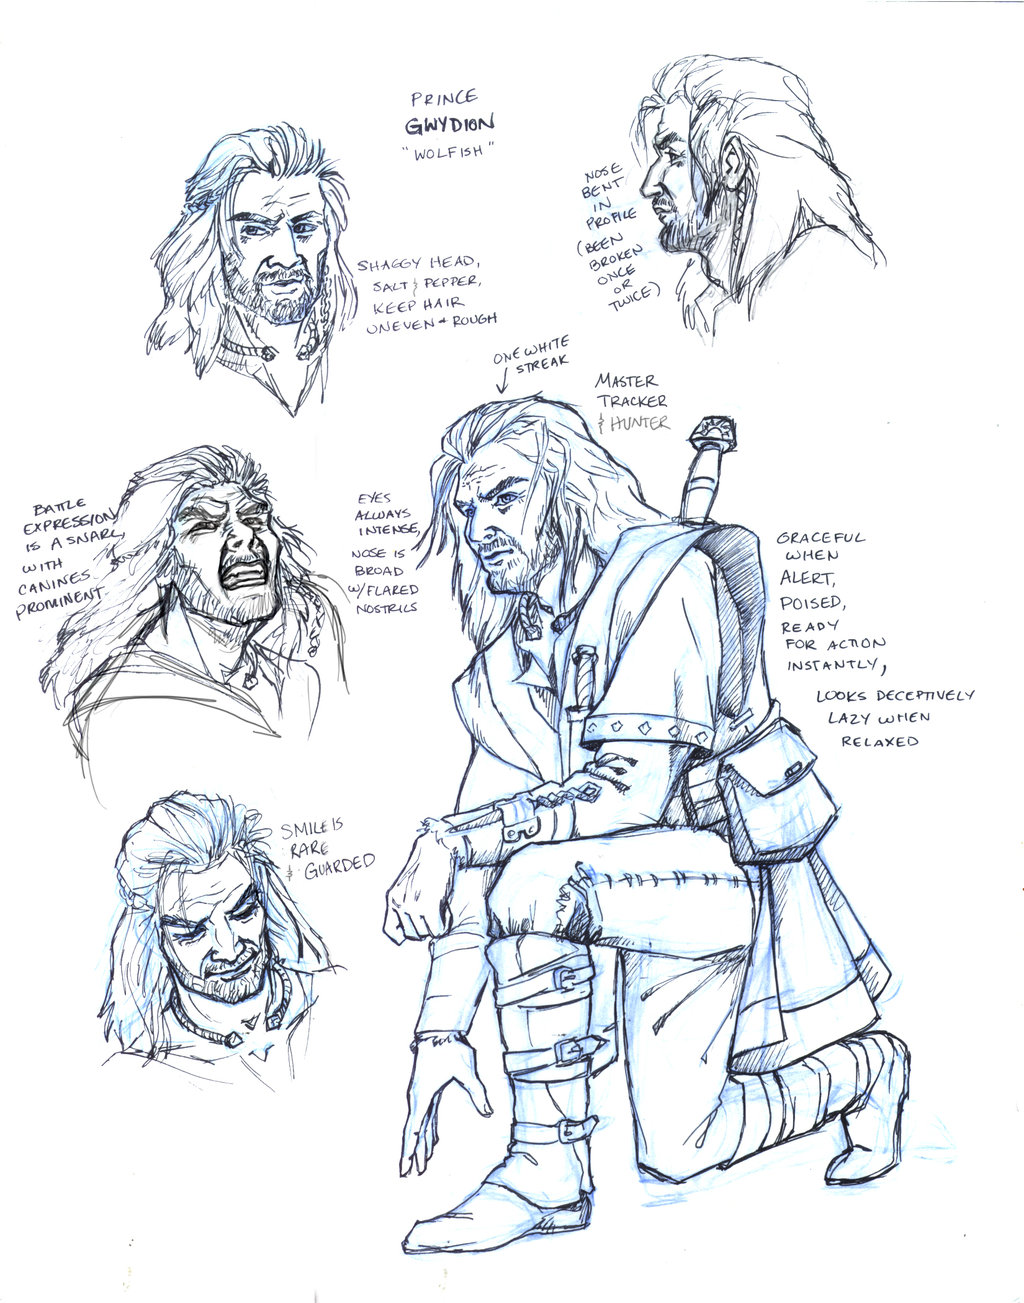 http://img2.wikia.nocookie.net/__cb20130604042512/prydain/images/b/b0/Gwydion_model_sheet_by_saeriellyn-d67po3o.jpg